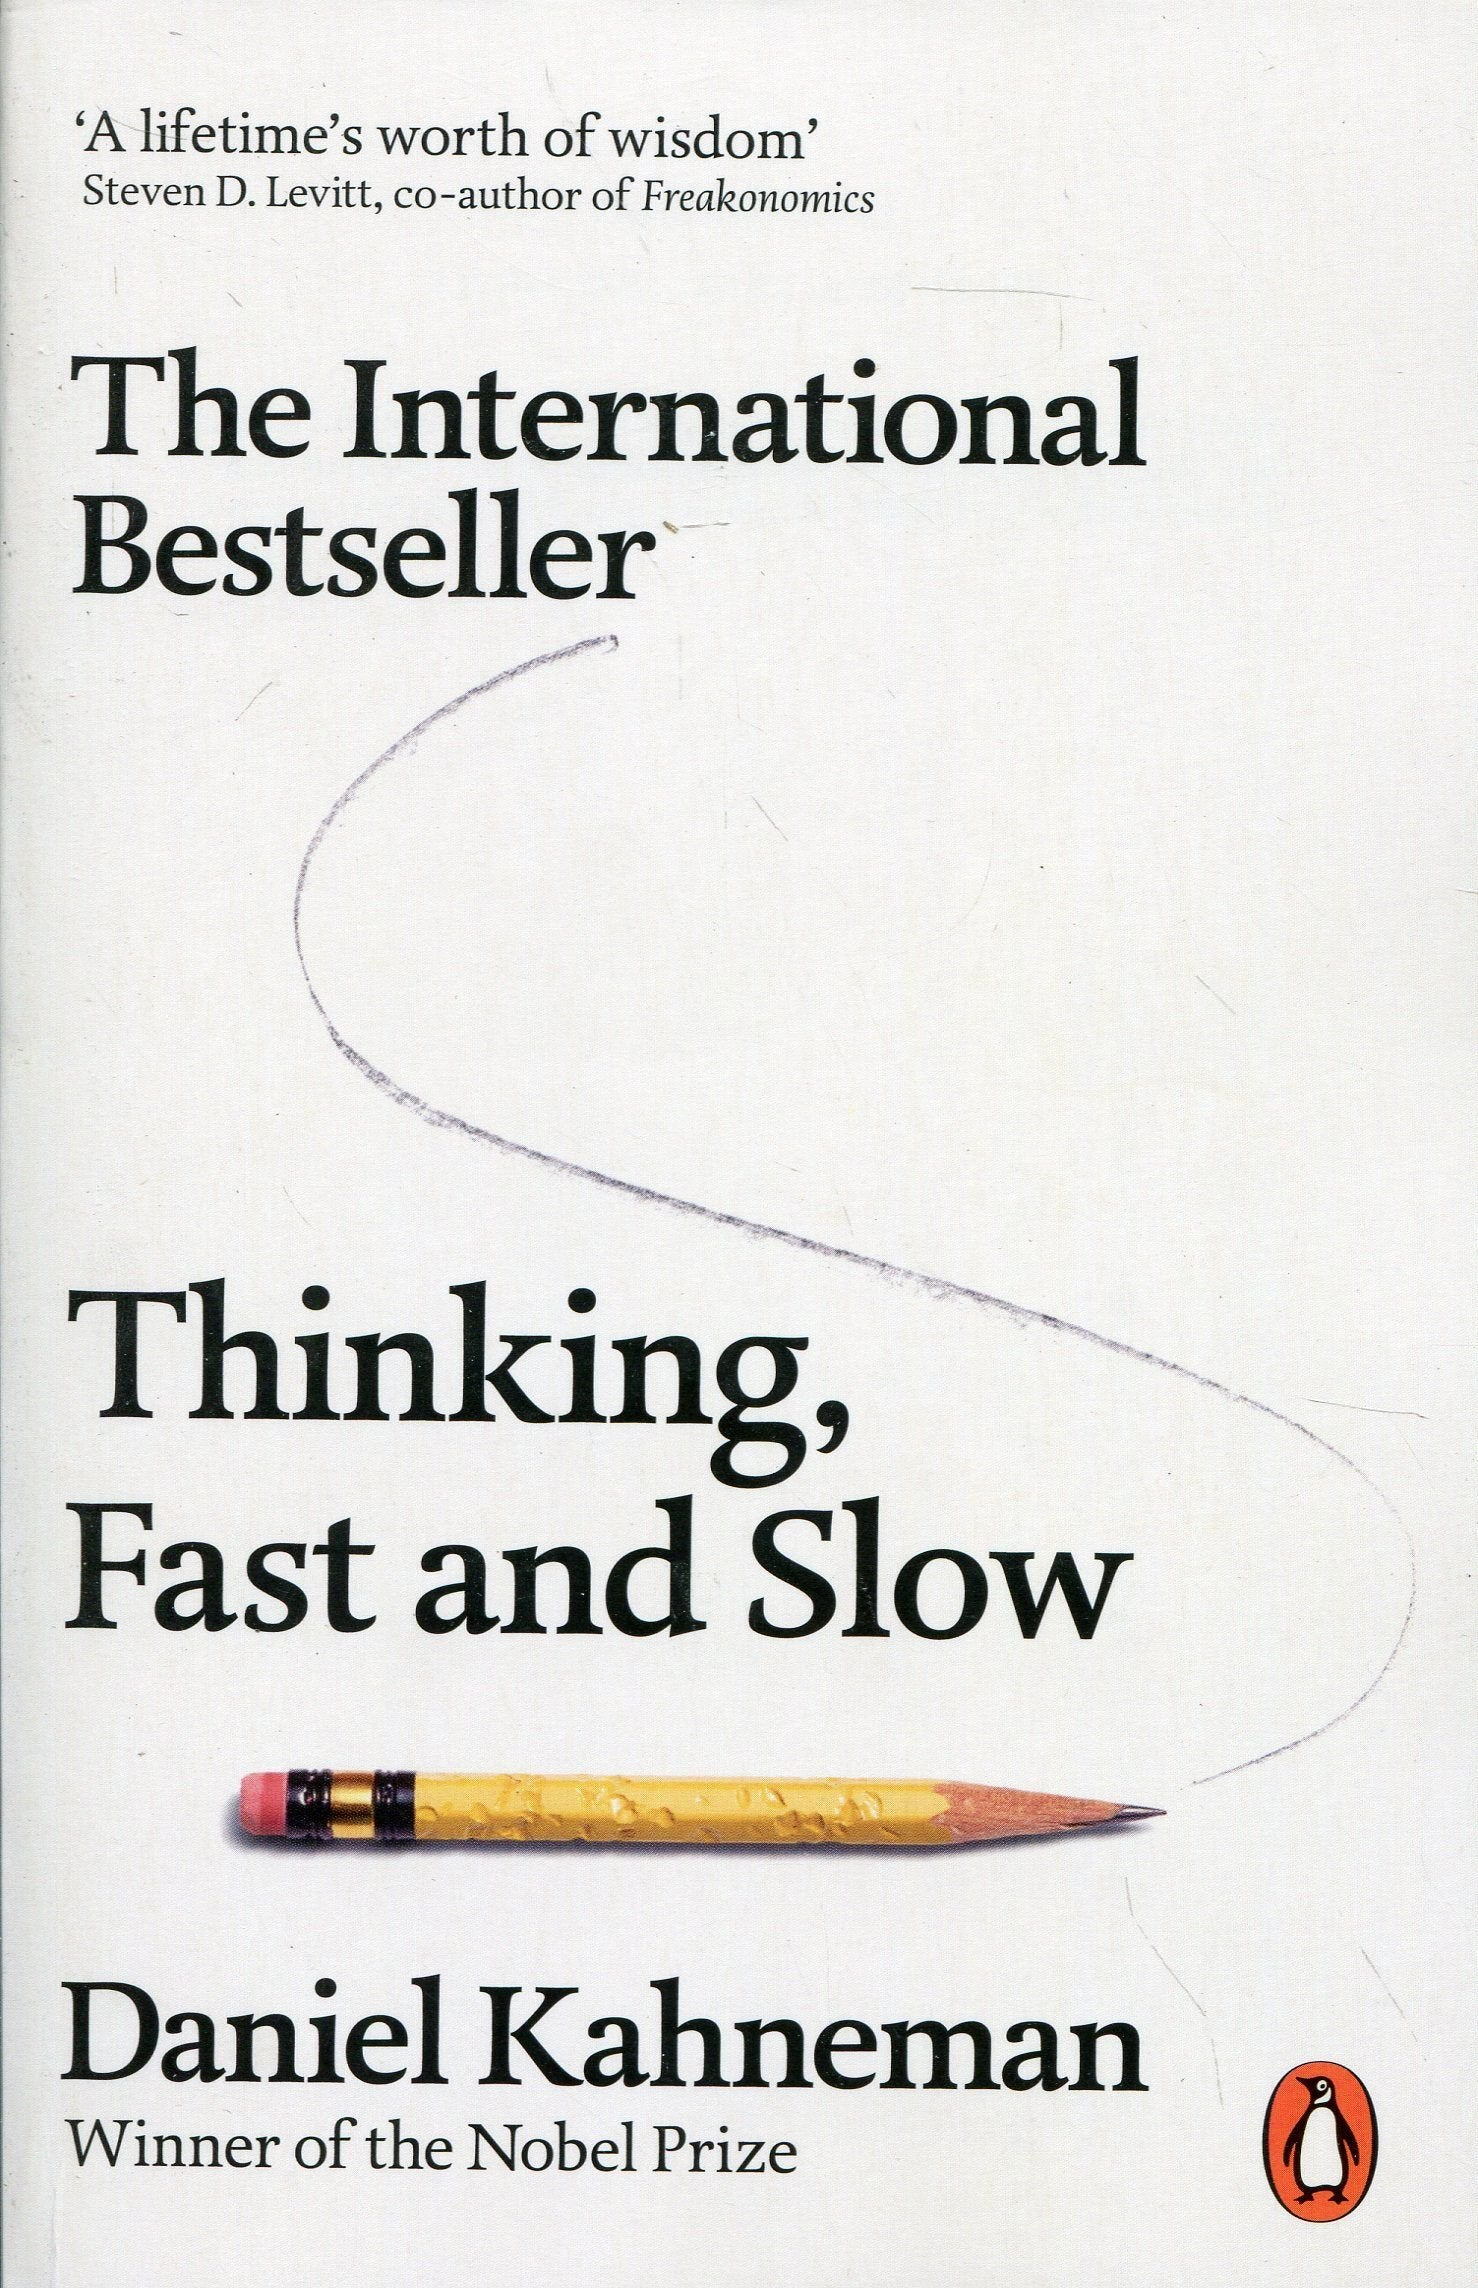 Thinking, fast and slow - a book on the reading list for students on our Psychology course at our summer school in Oxford